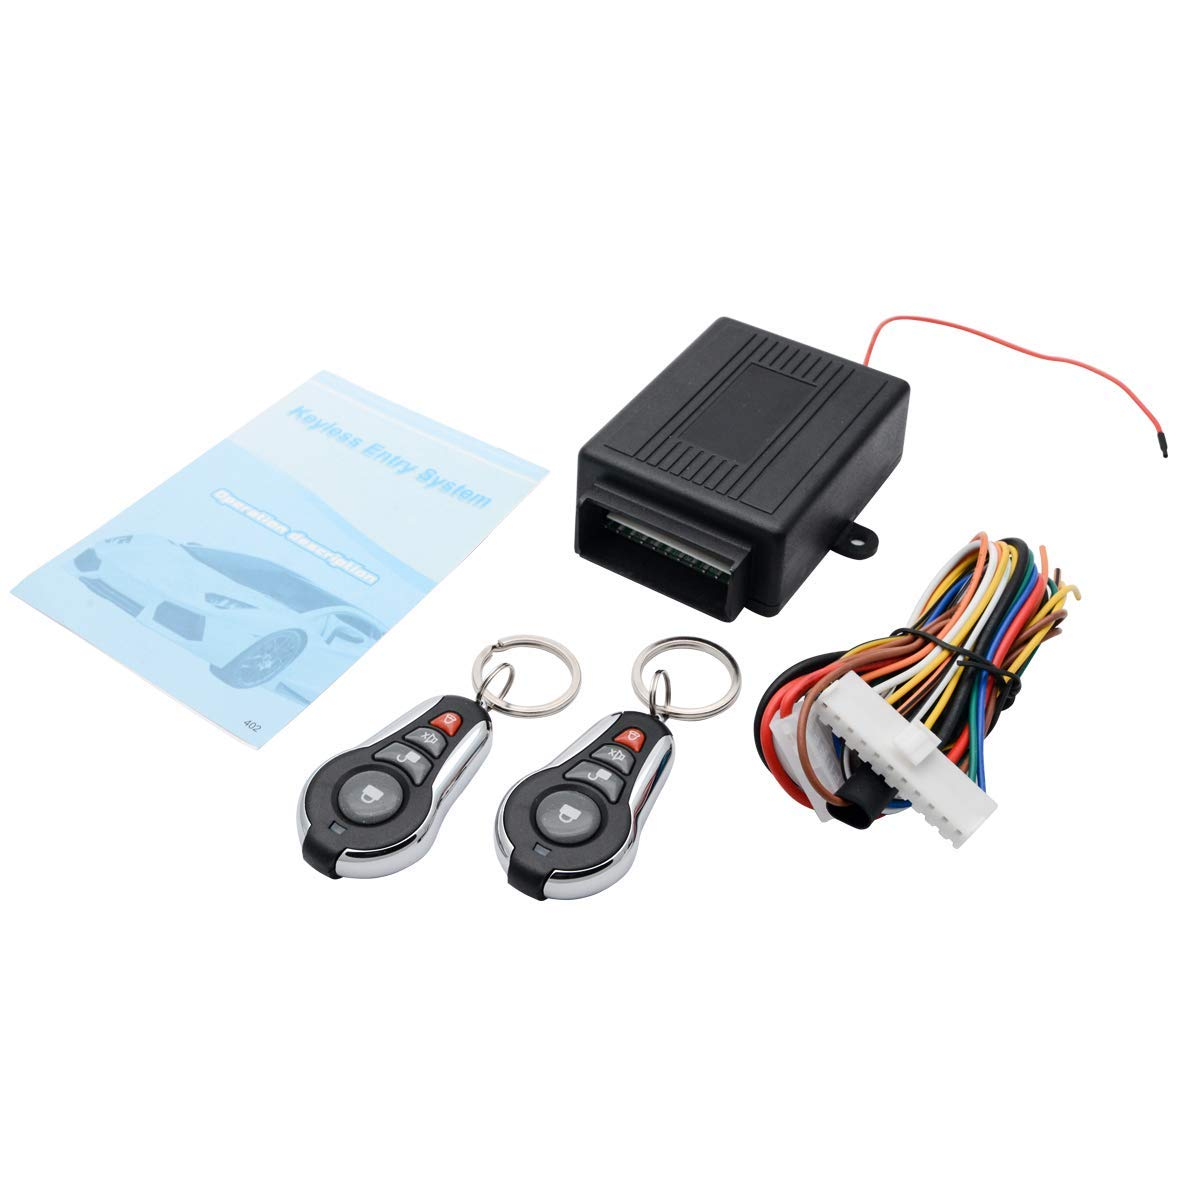 Cheap Car Remote Door Lock Kit, find Car Remote Door Lock